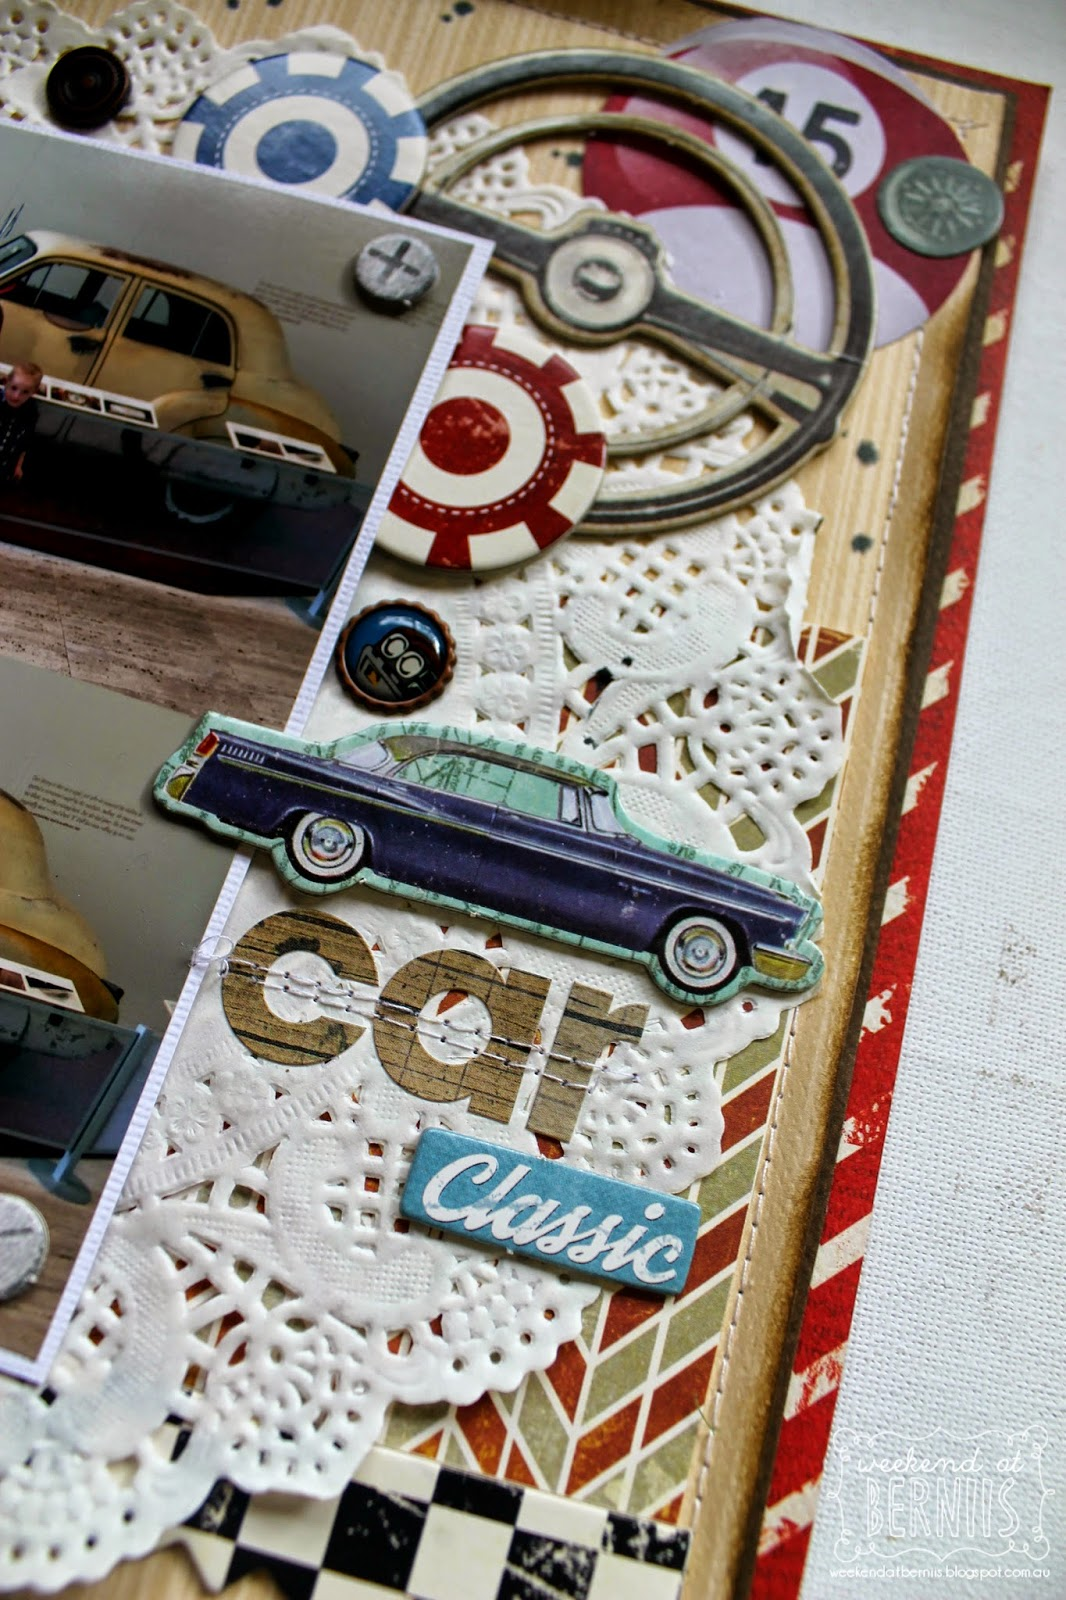 Car classic by Bernii Miller for BoBunny using Wild Card collection.